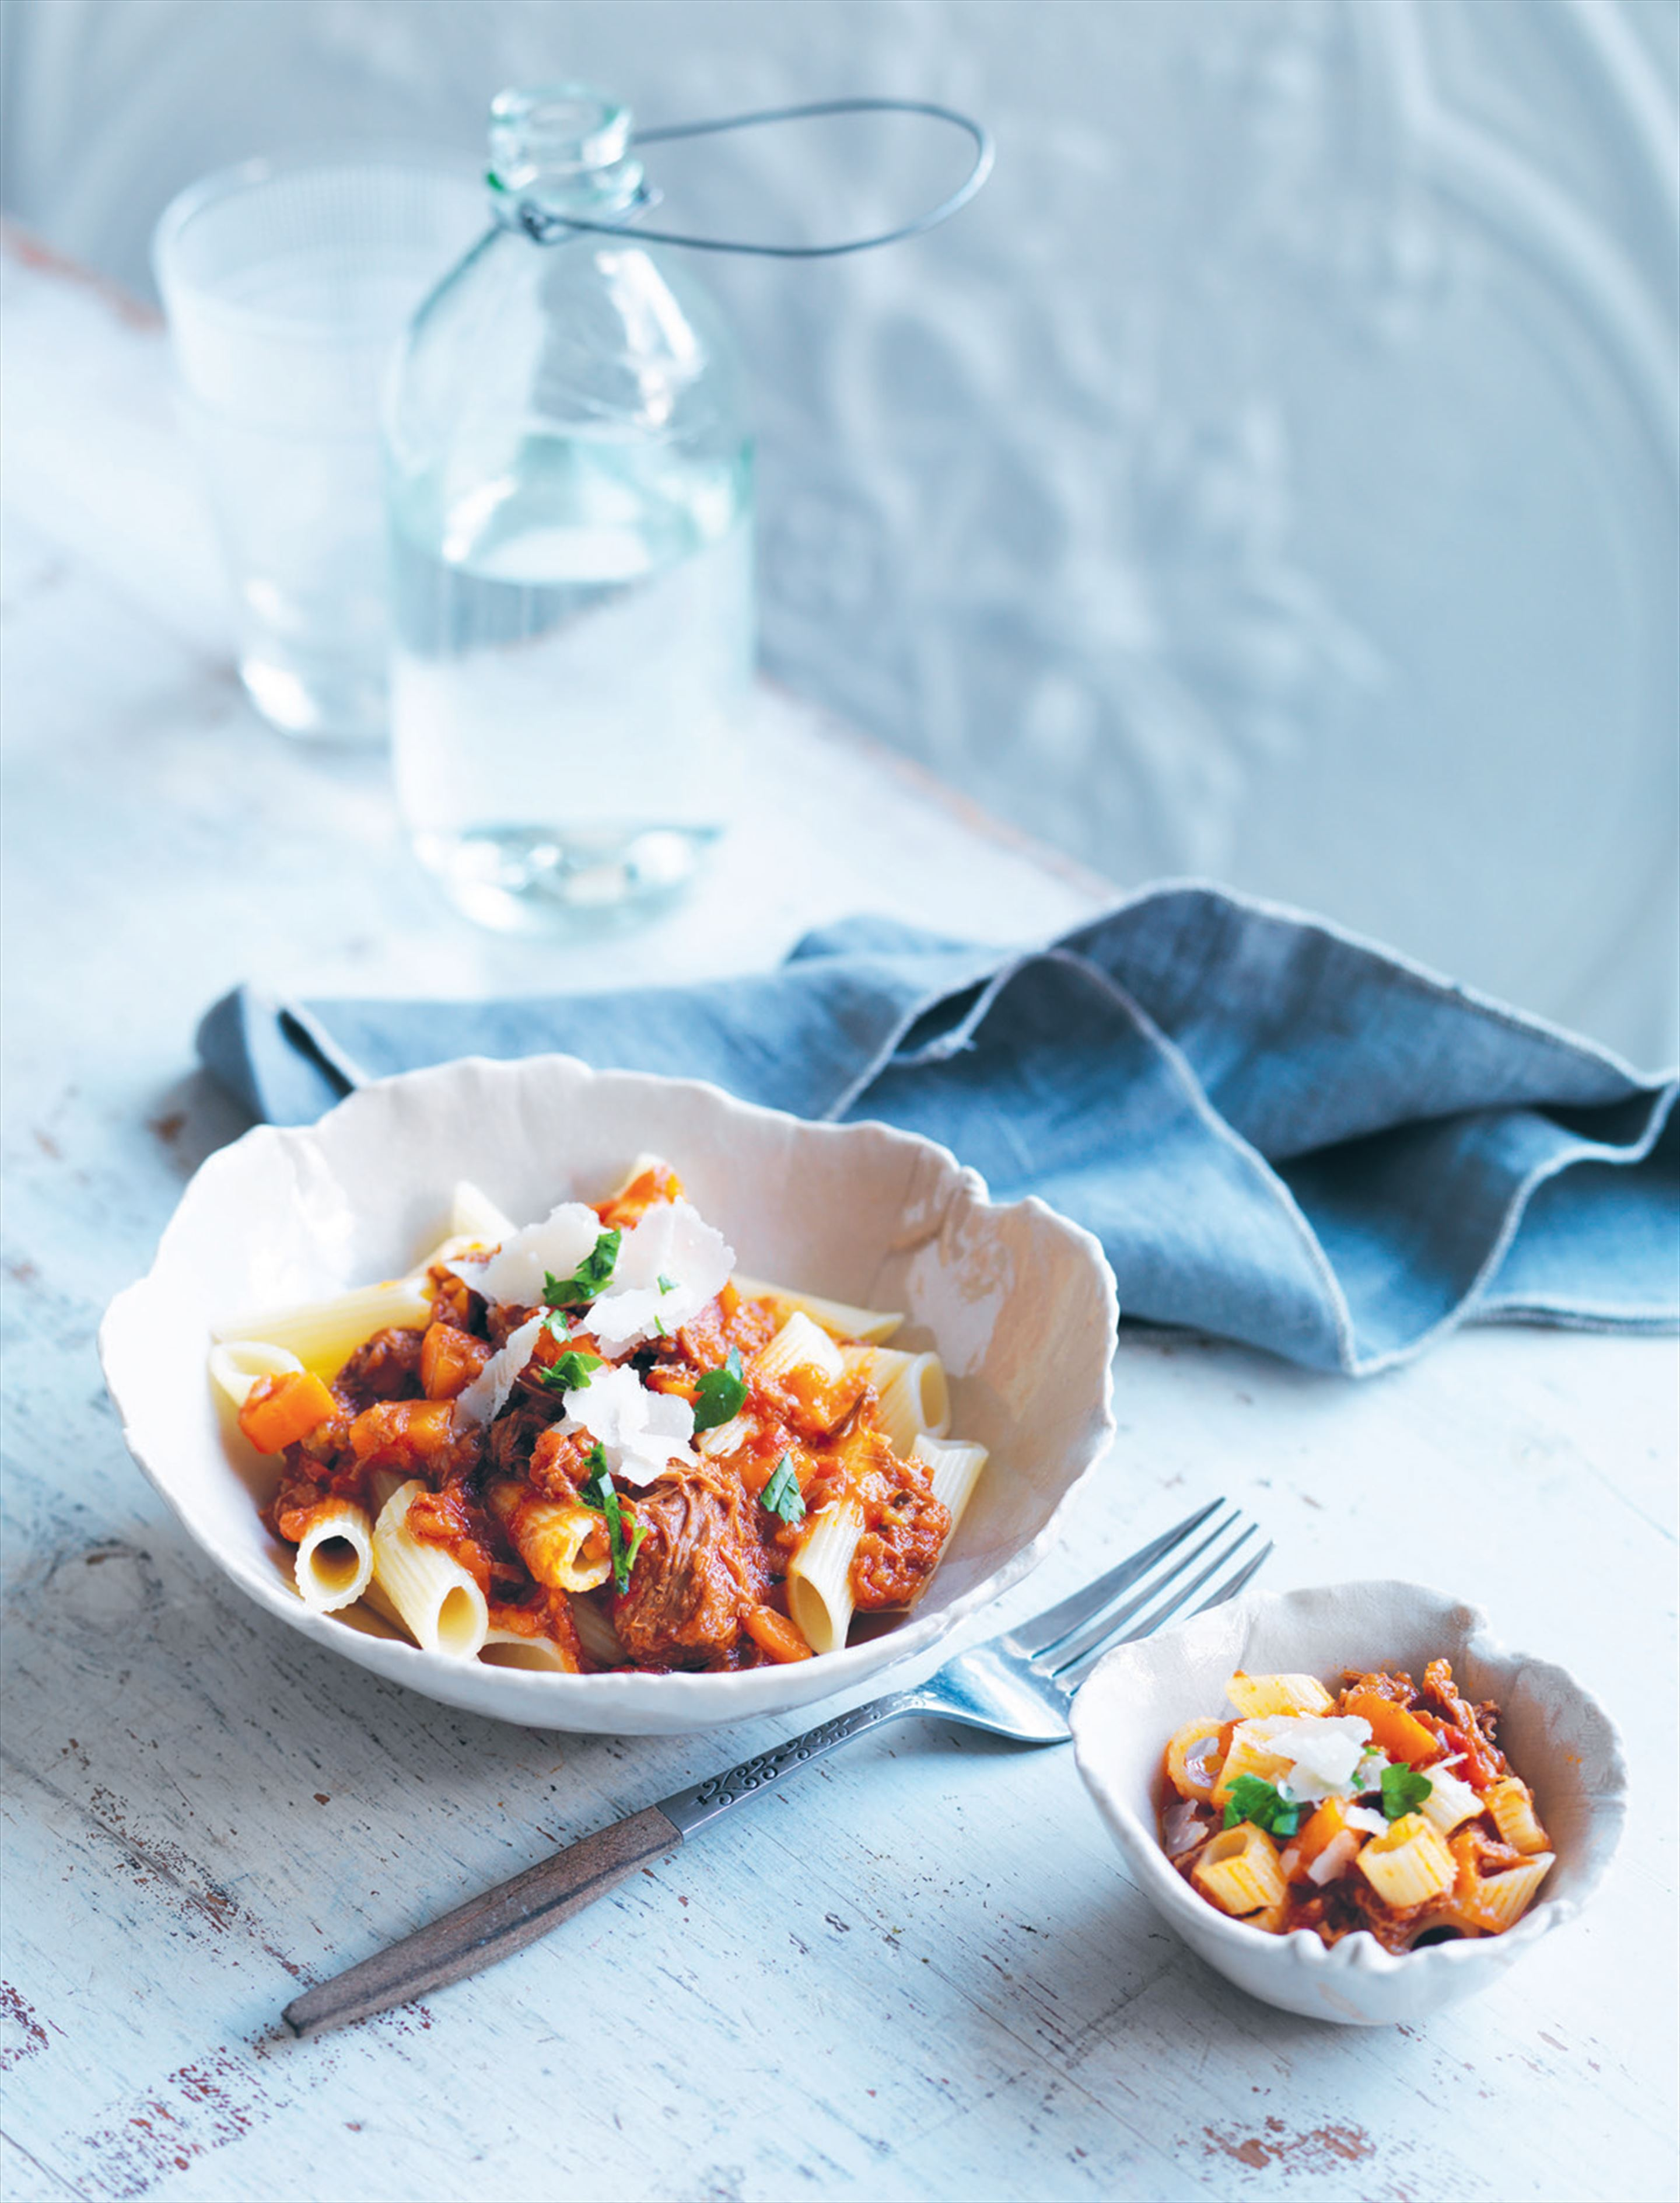 Slow-cooked beef ragu with penne